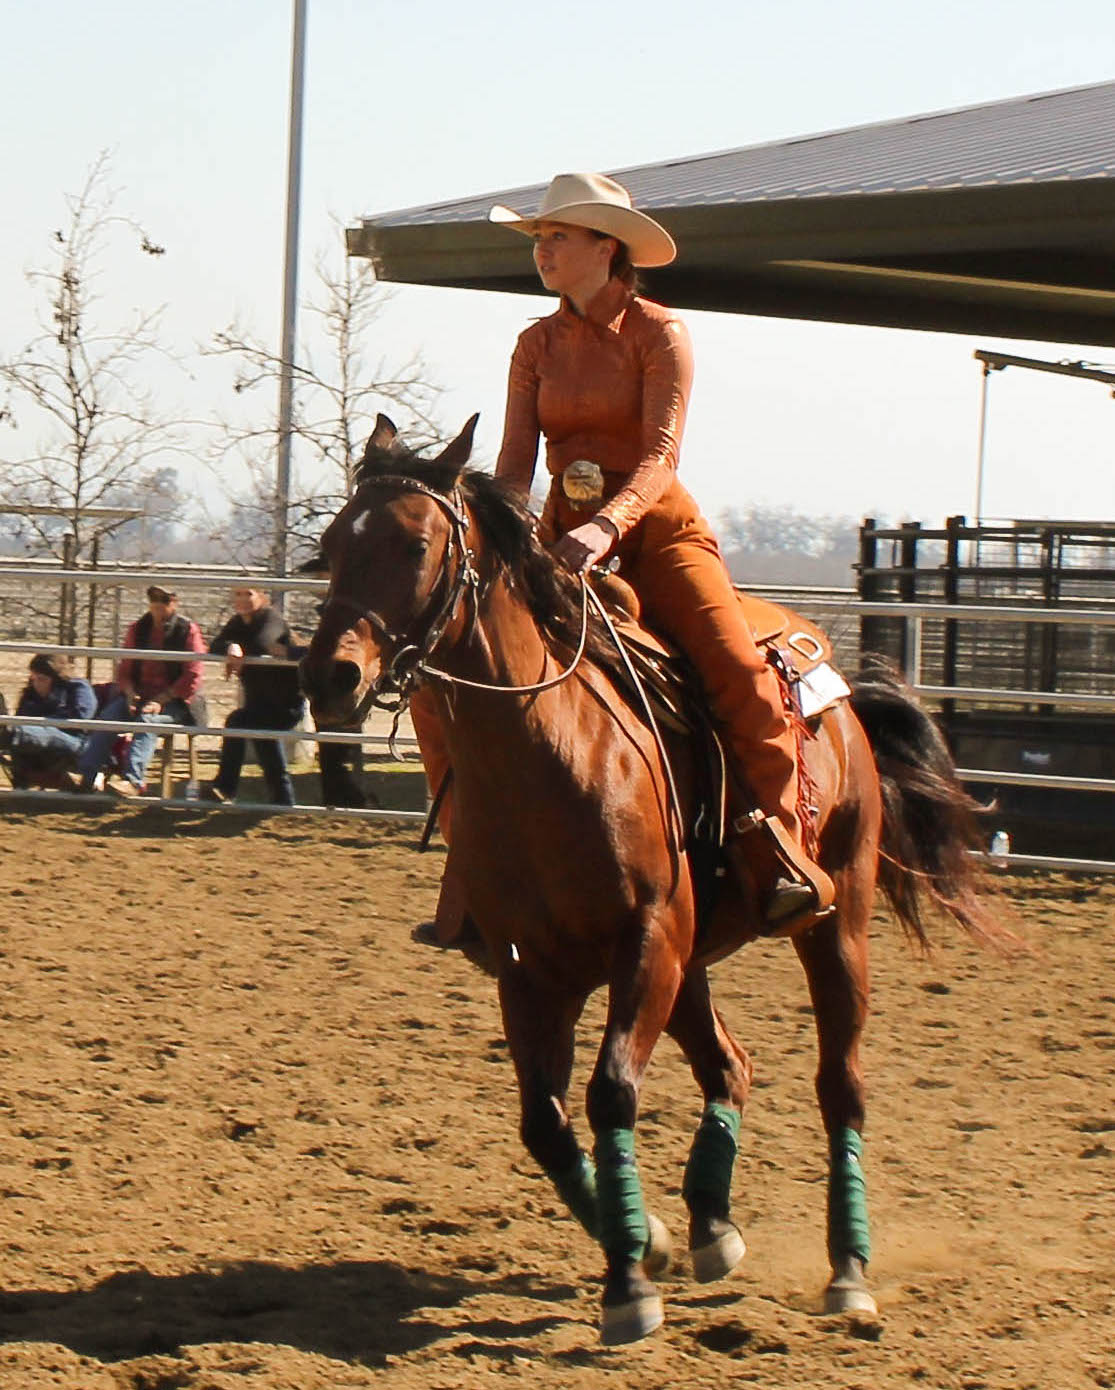 Did you know that COS had an Equestrian team?